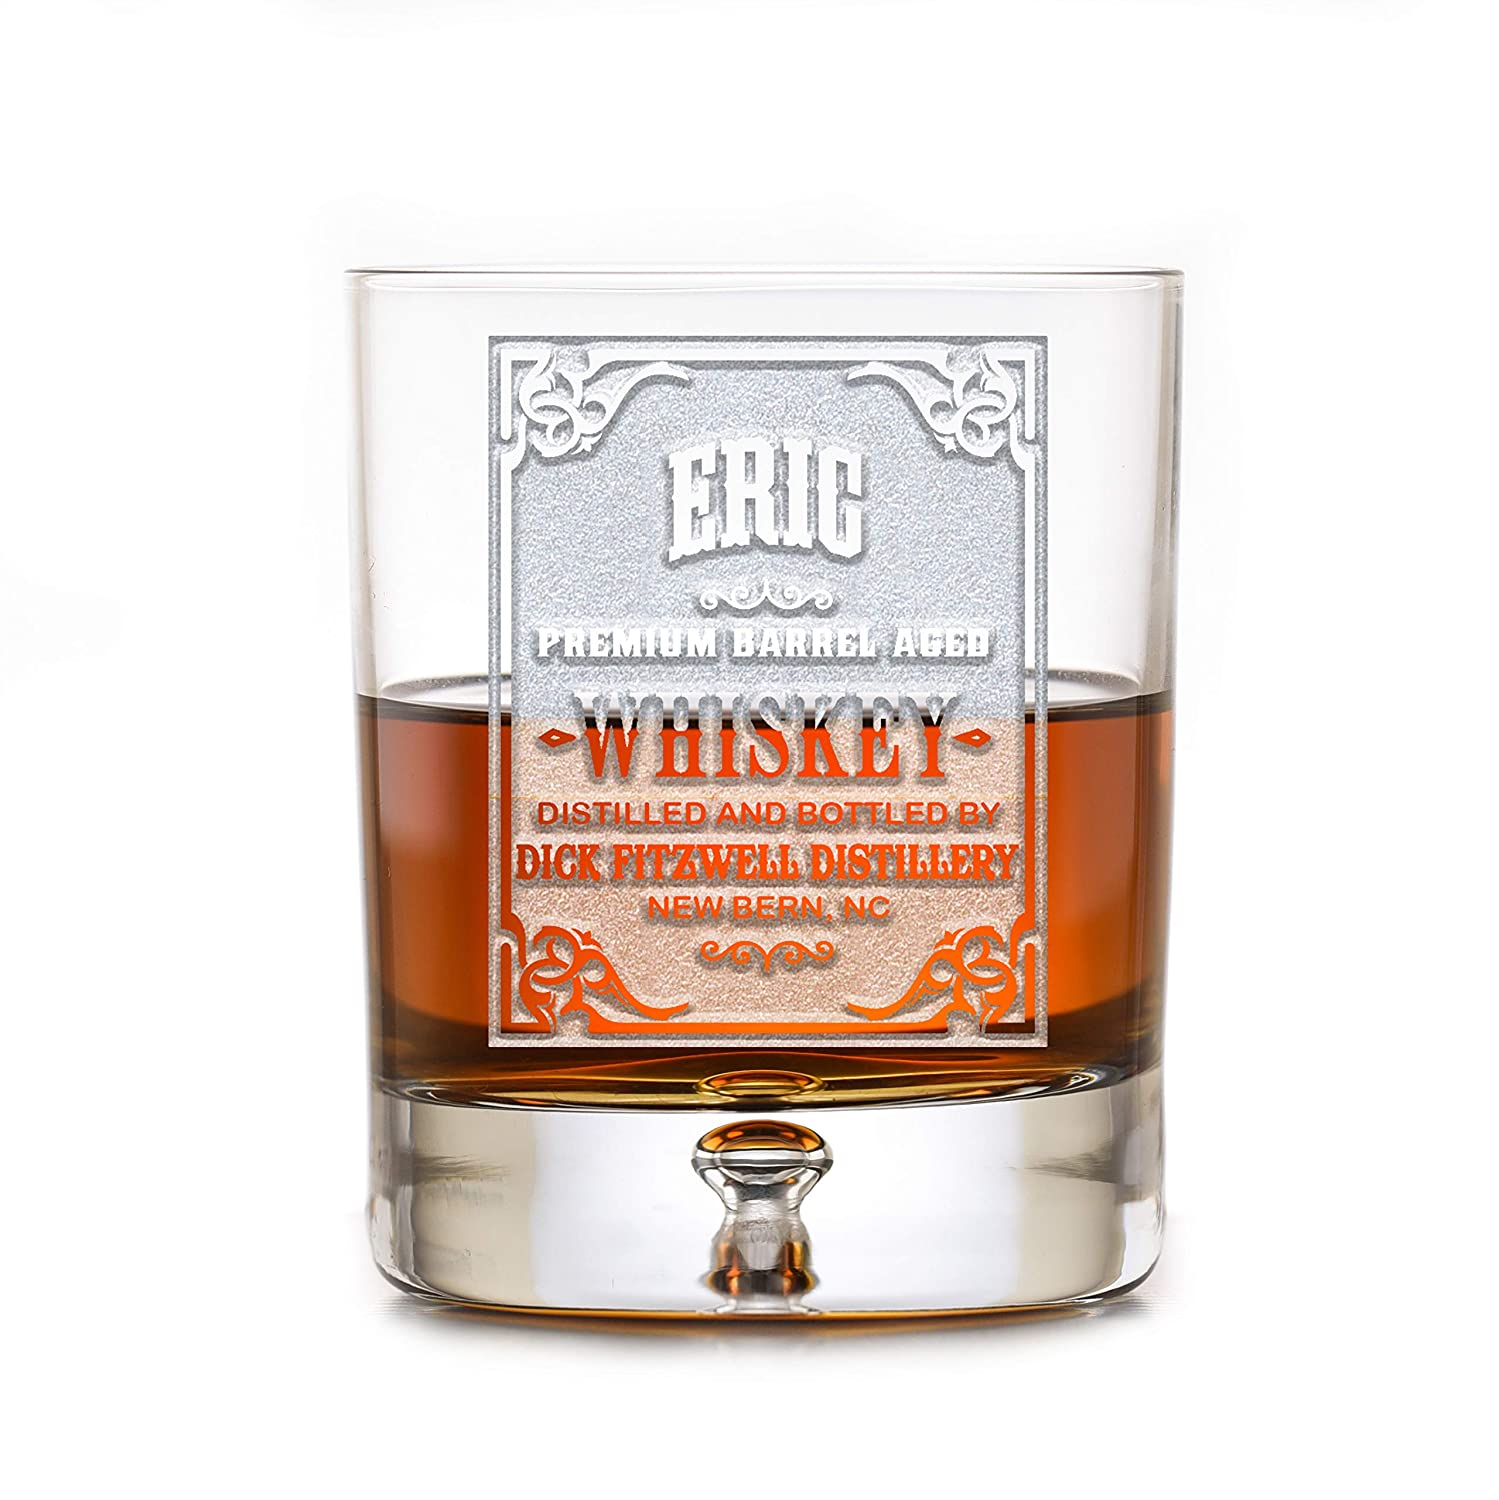 Engraved Lead-Free 2021 model Shipping included Crystal Rocks Bourbon Whiskey Glasses Glass